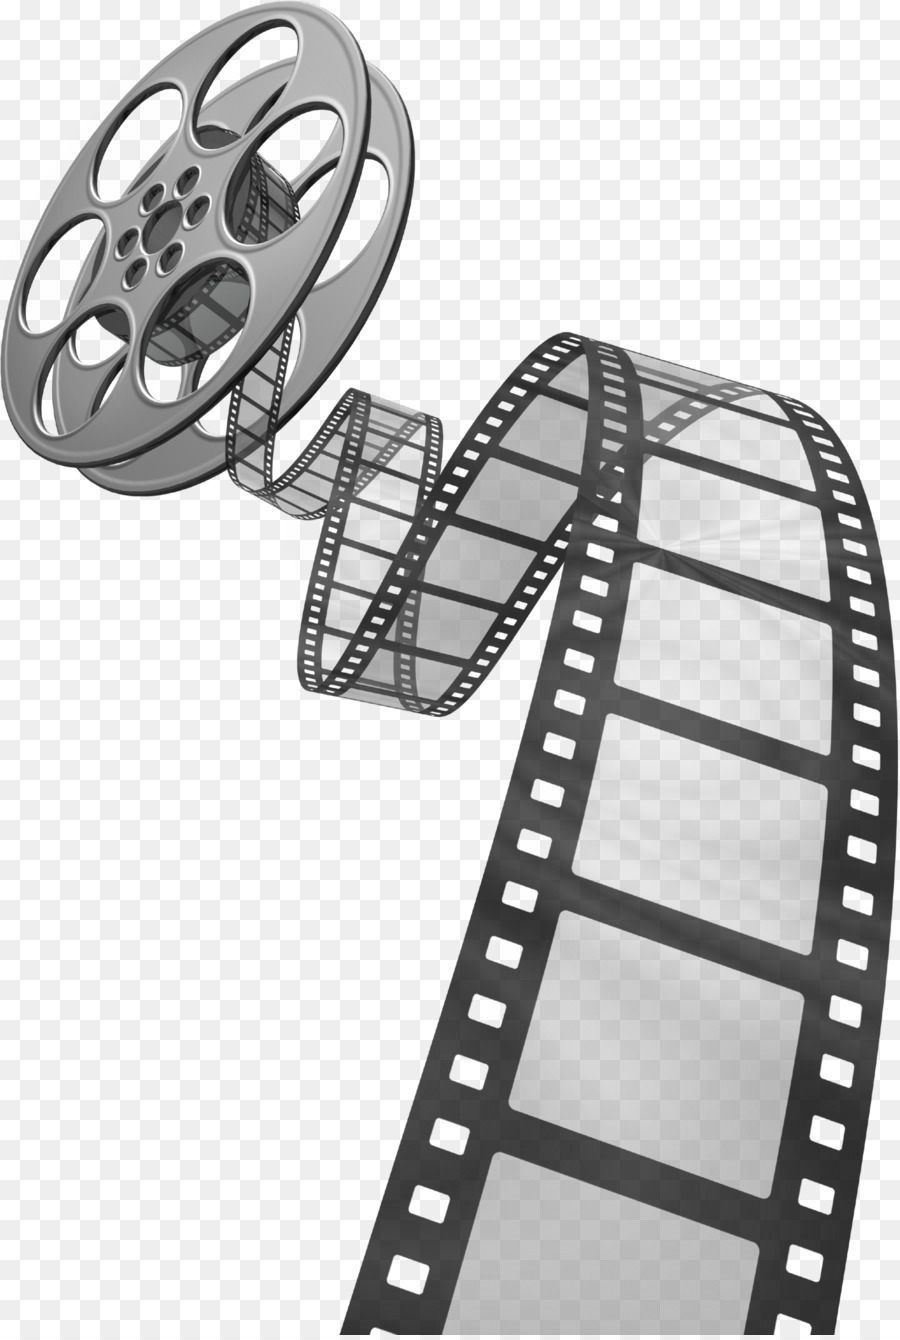 Photographic Film Reel Clip Art Movie Film Png Download 1600 2373 Free Transparent Photographic Film Png Downloa Movie Reels Film Reels Photographic Film